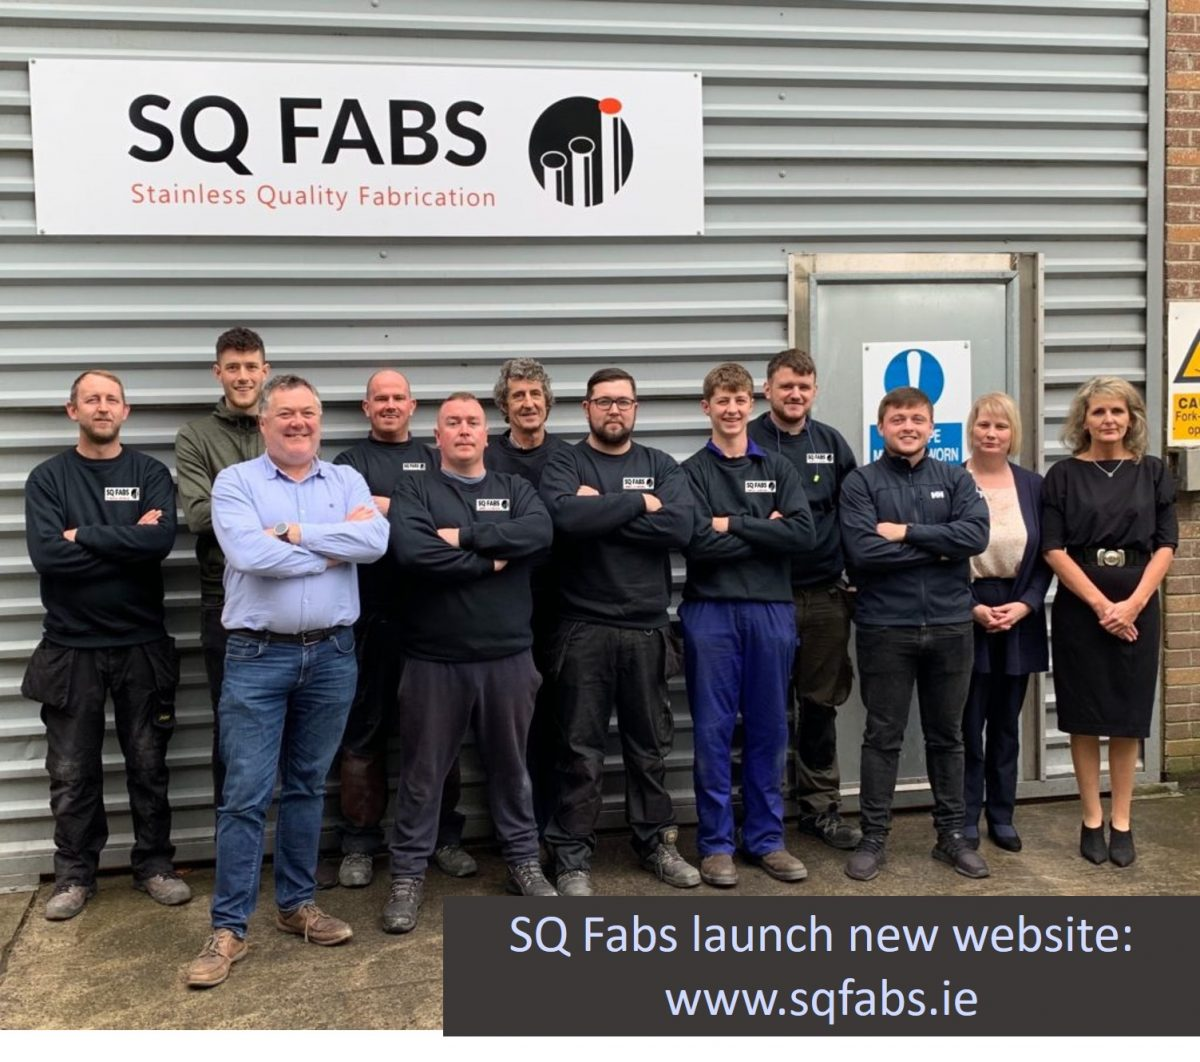 SQ Fabs Launch New Website